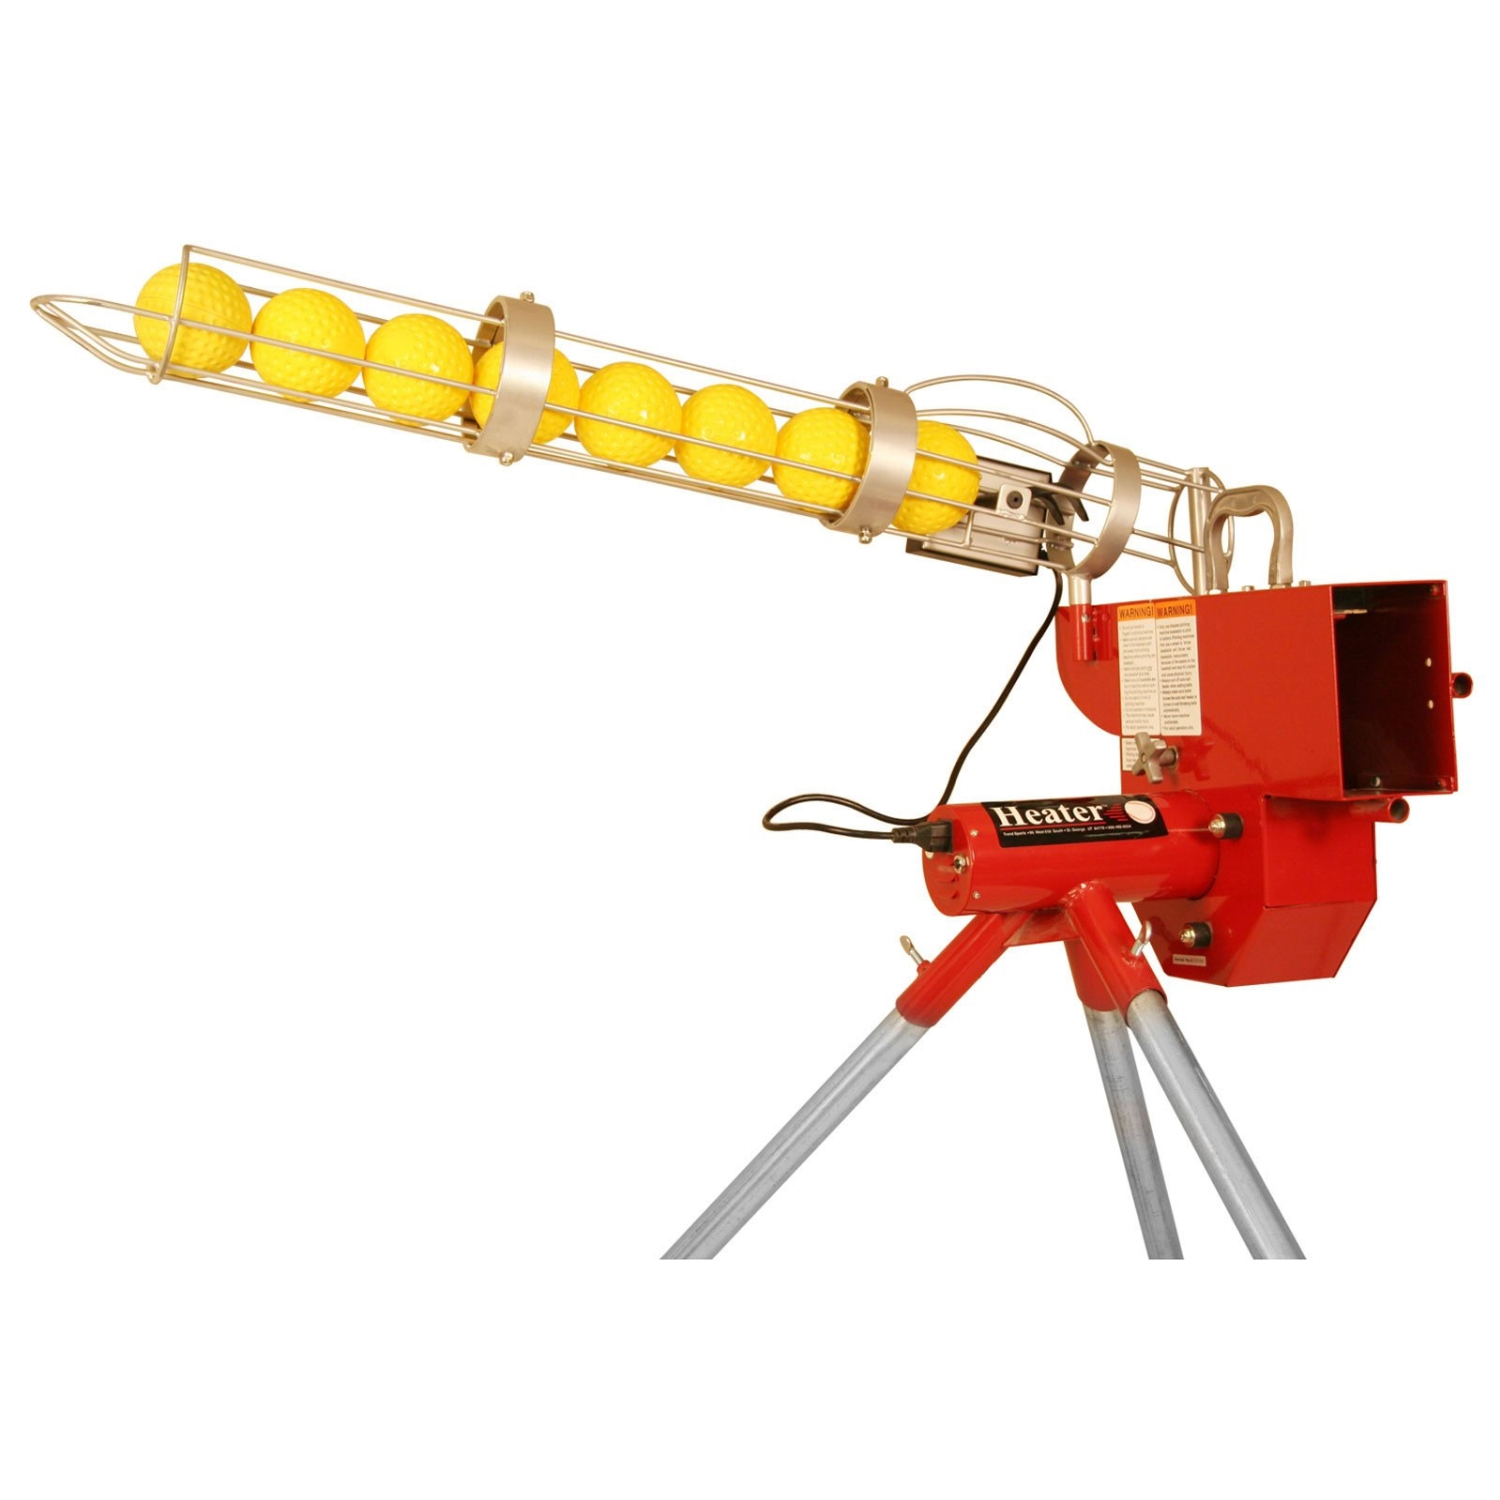 Packaging or Promotional image for Heater Softball Pitching Machine with Ball Feeder